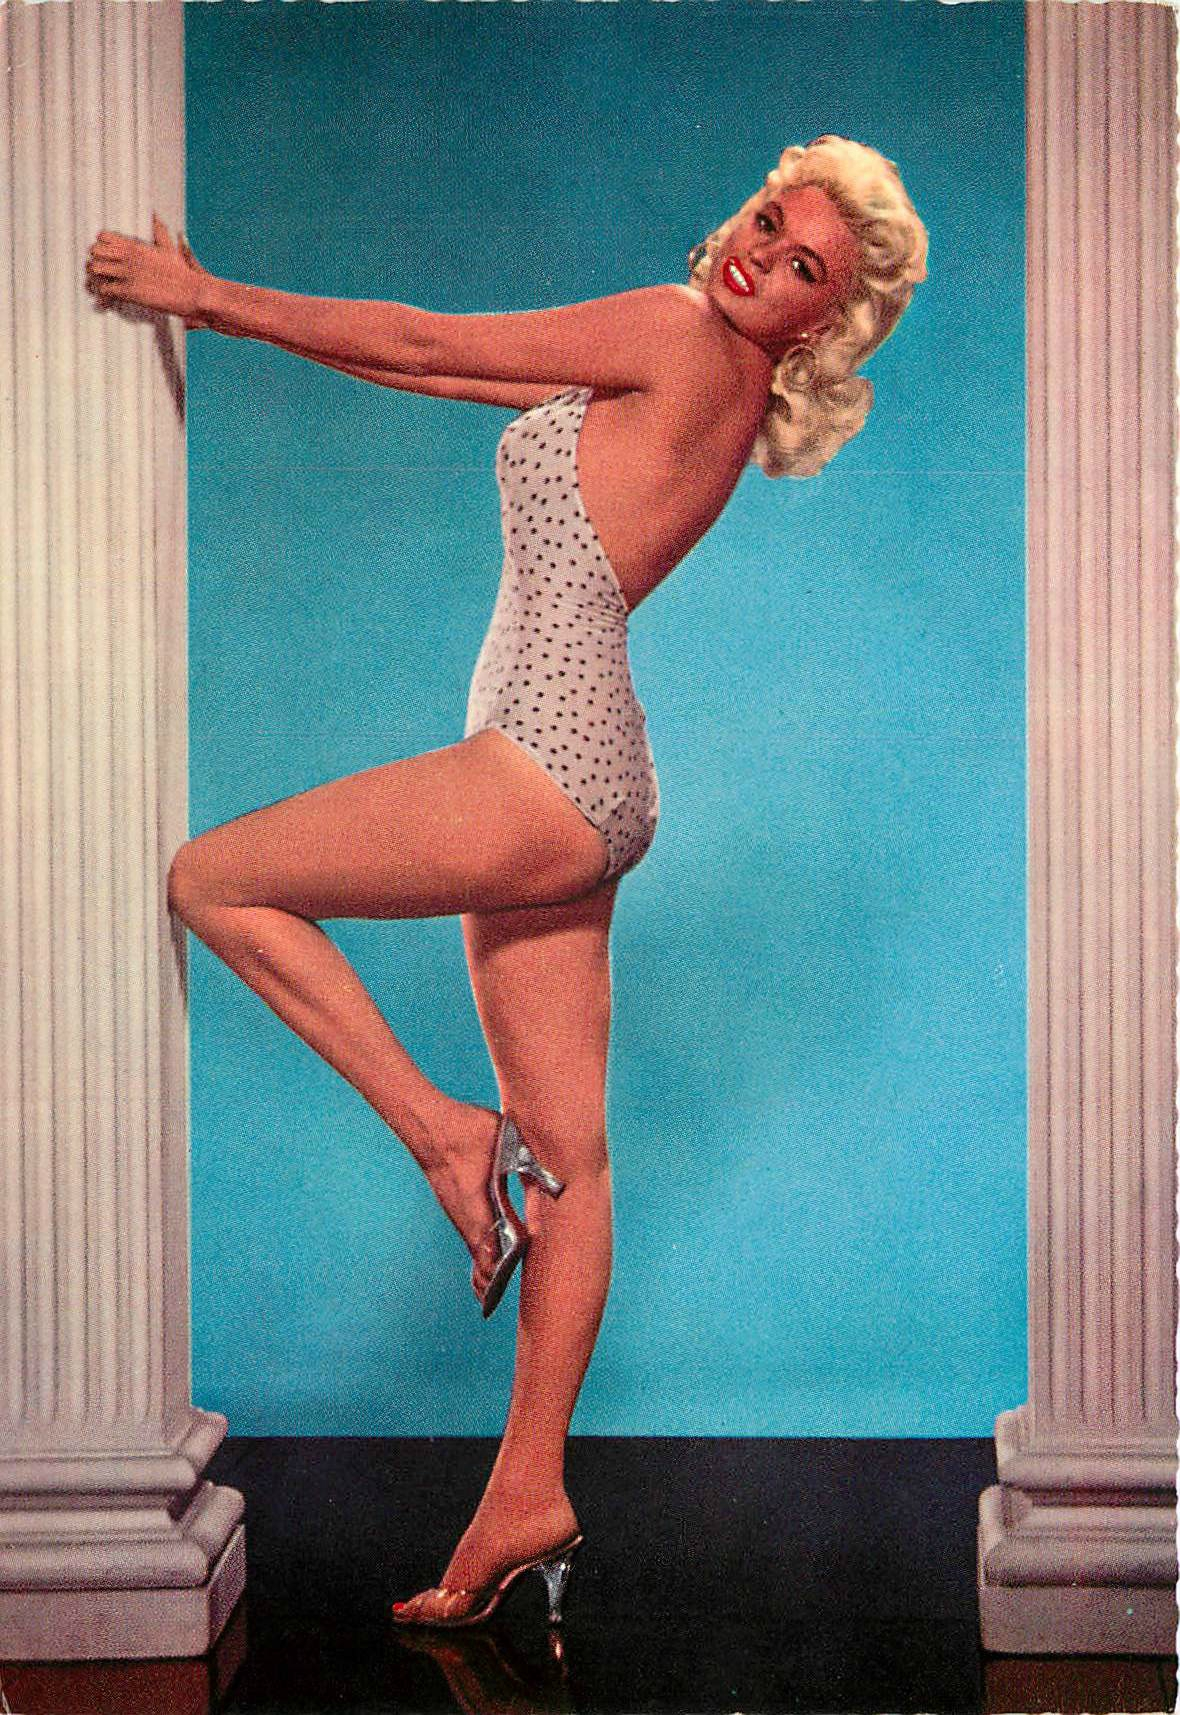 jayne_swimsuit_poids-1956-the_girl_cant_help_it-pub-1-3